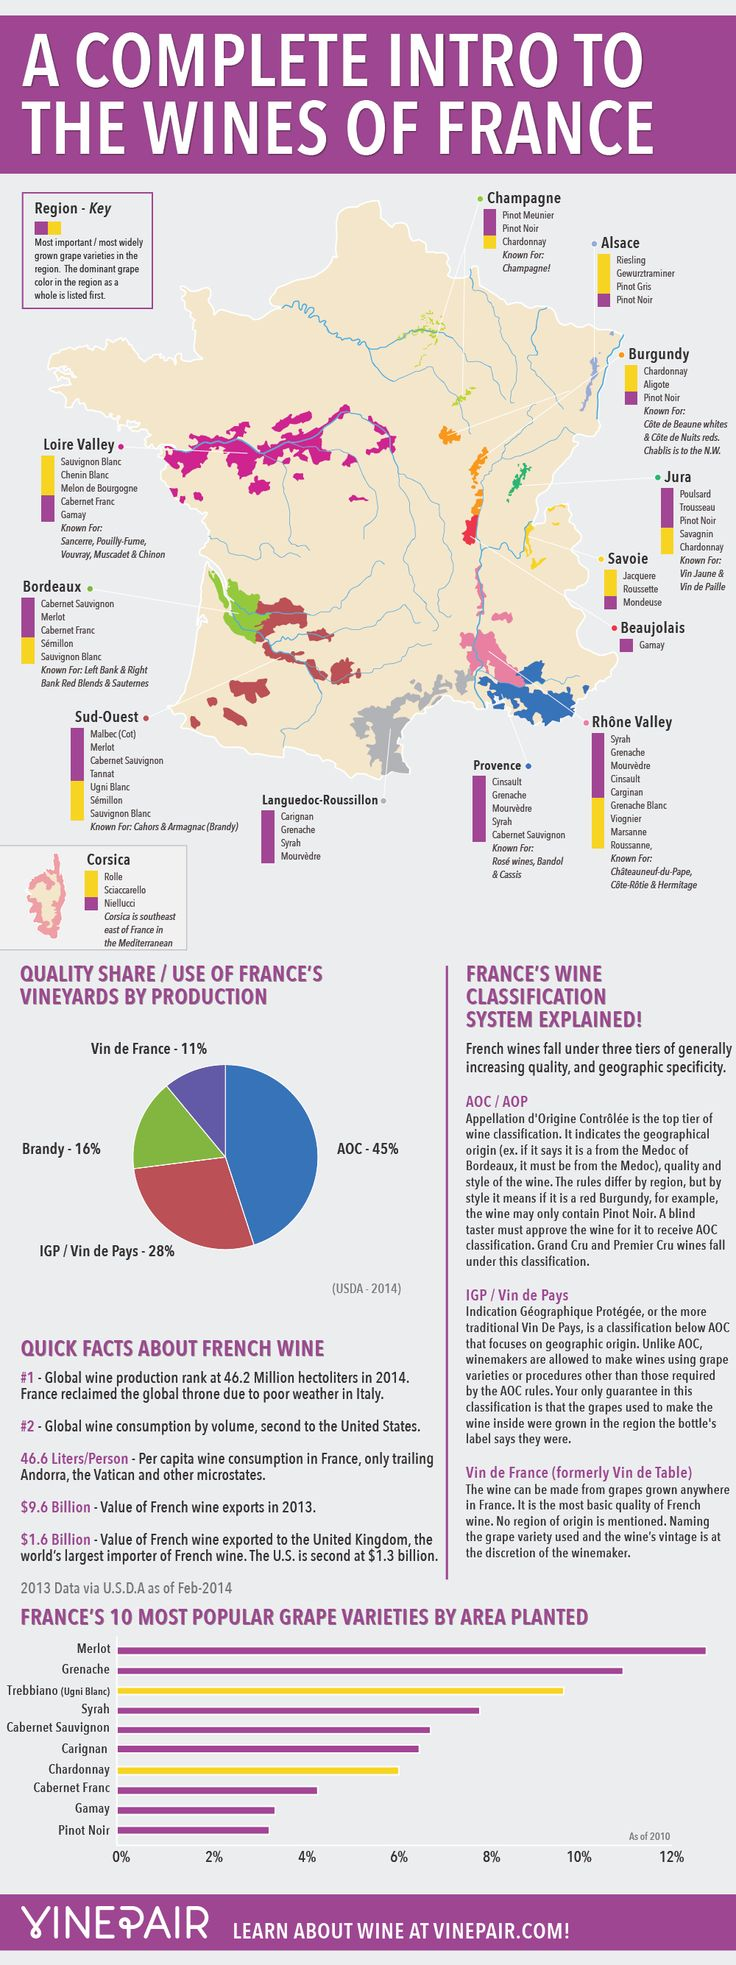 Afbeelding van http://vinepair.com/features/external/intro-wines-of-france-map-guide-infographic.png.